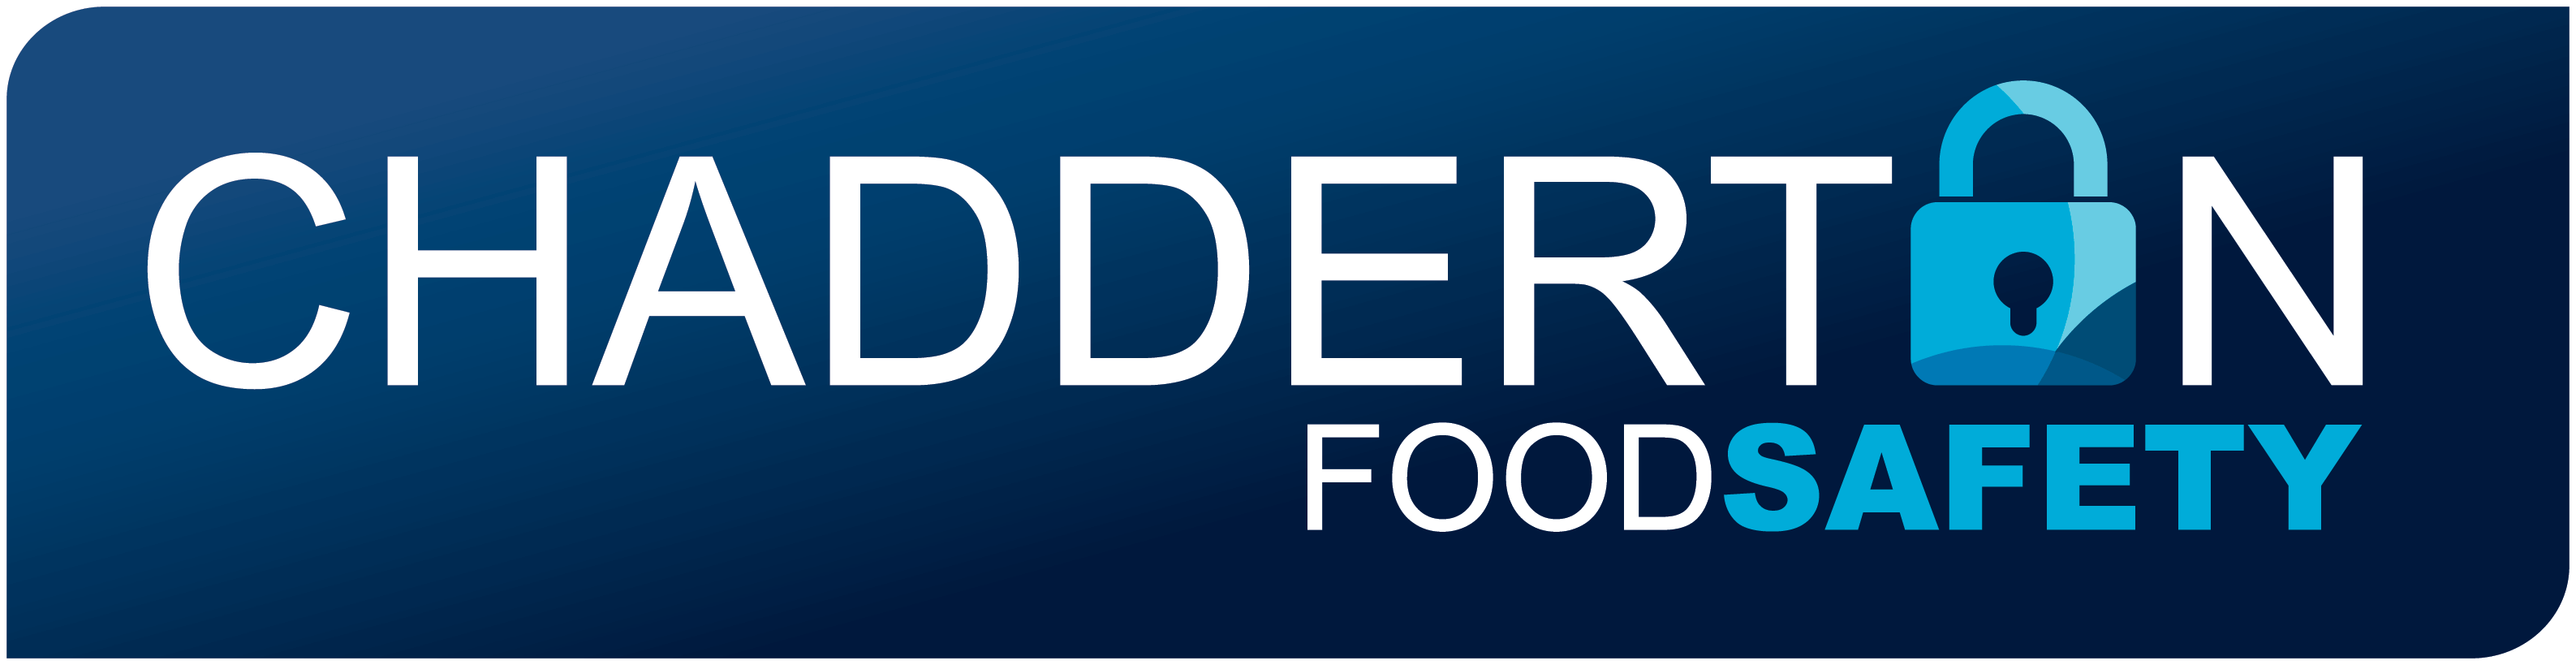 Chadderton Food Safety Website